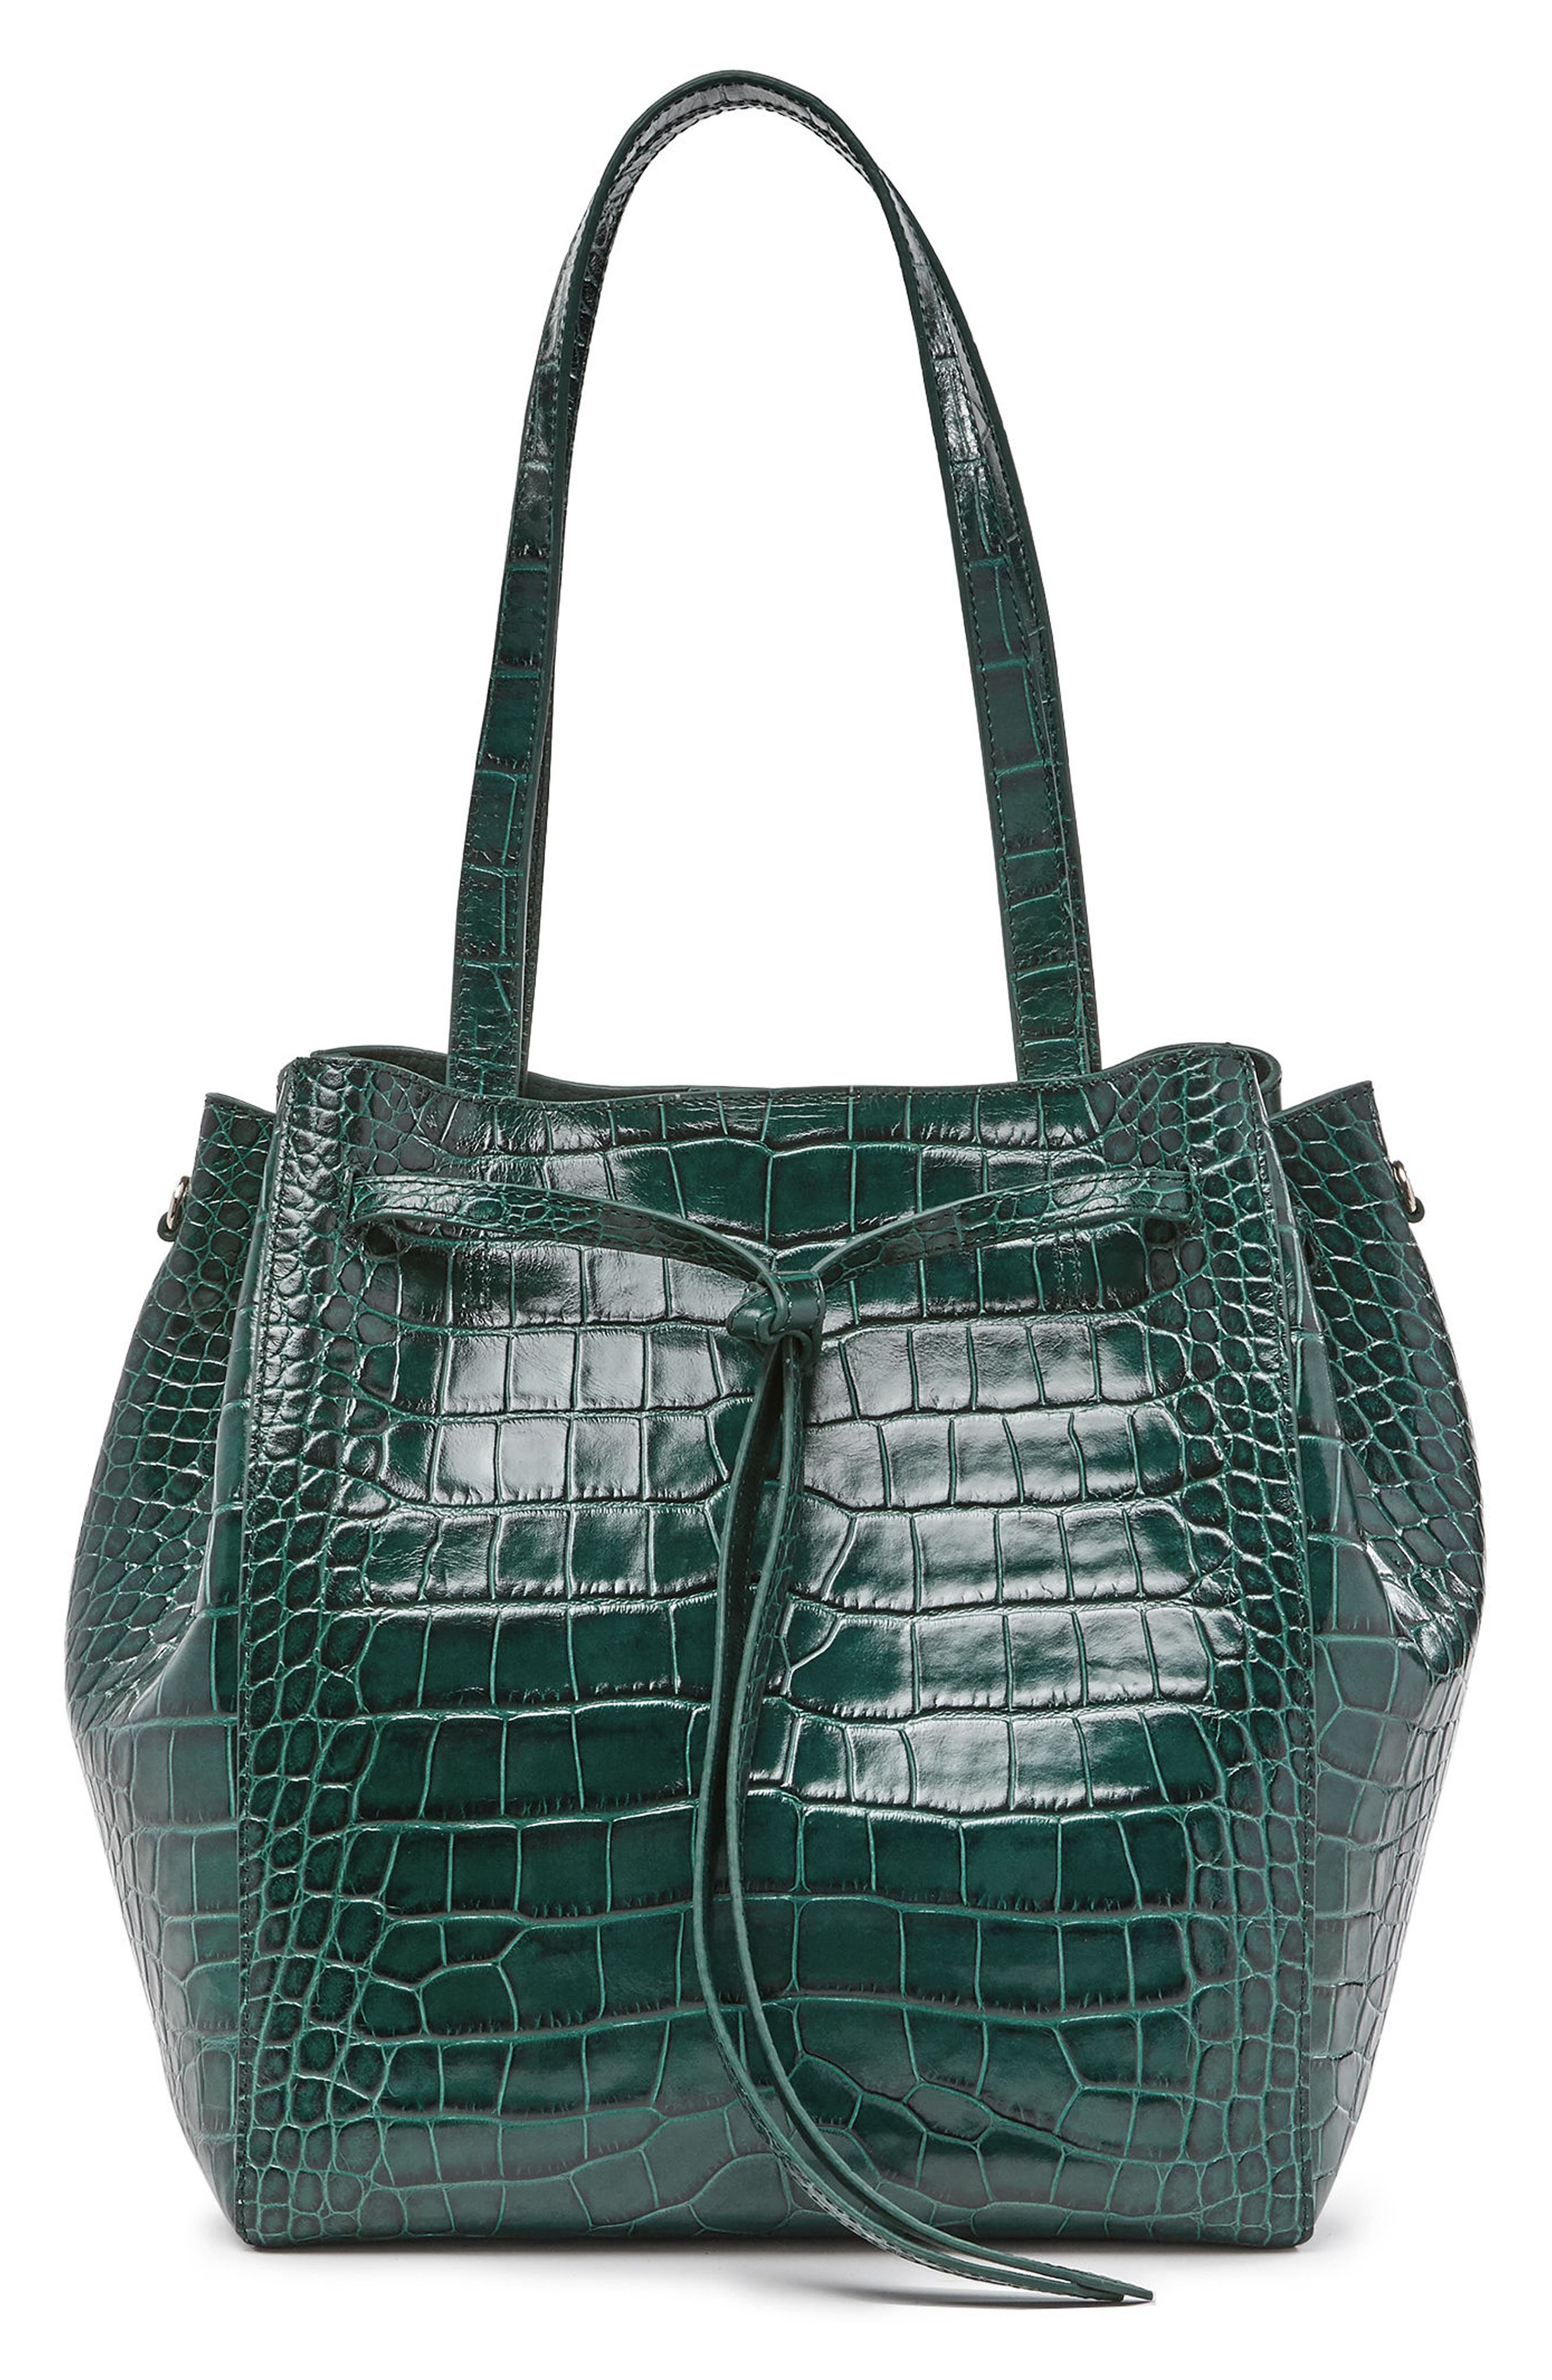 Alternate Image 1 Selected - Pop & Suki Croc Embossed Carryall Tote (Nordstrom Exclusive)